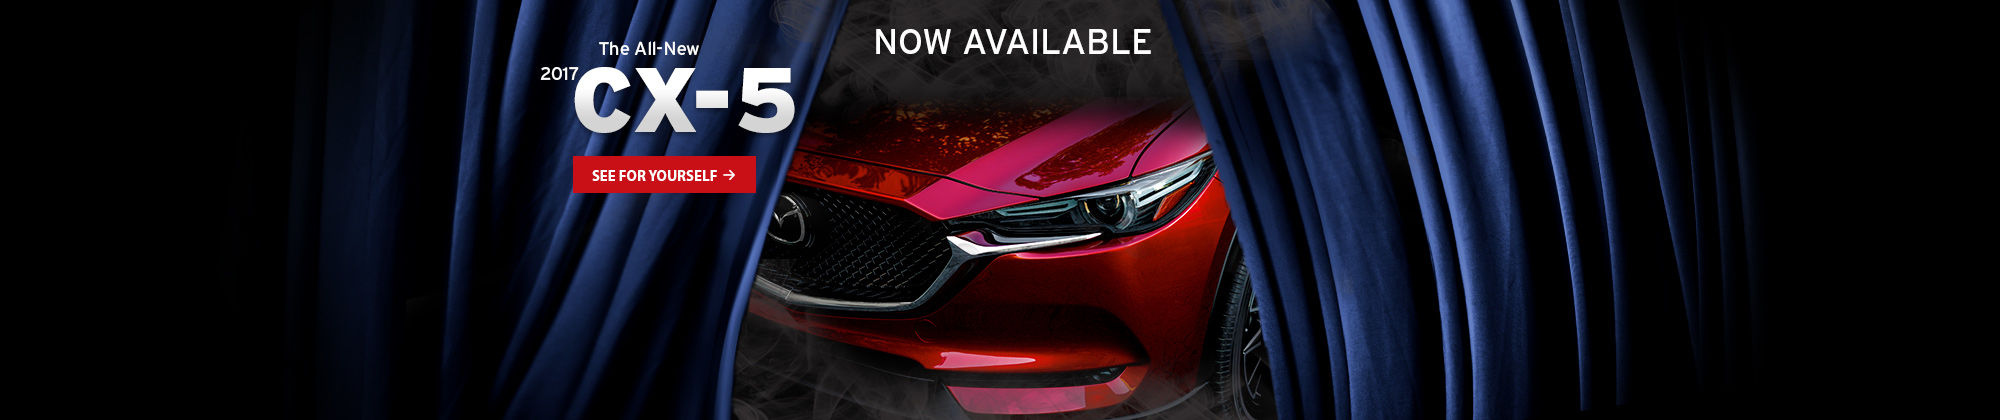 The all-new 2017 CX-5